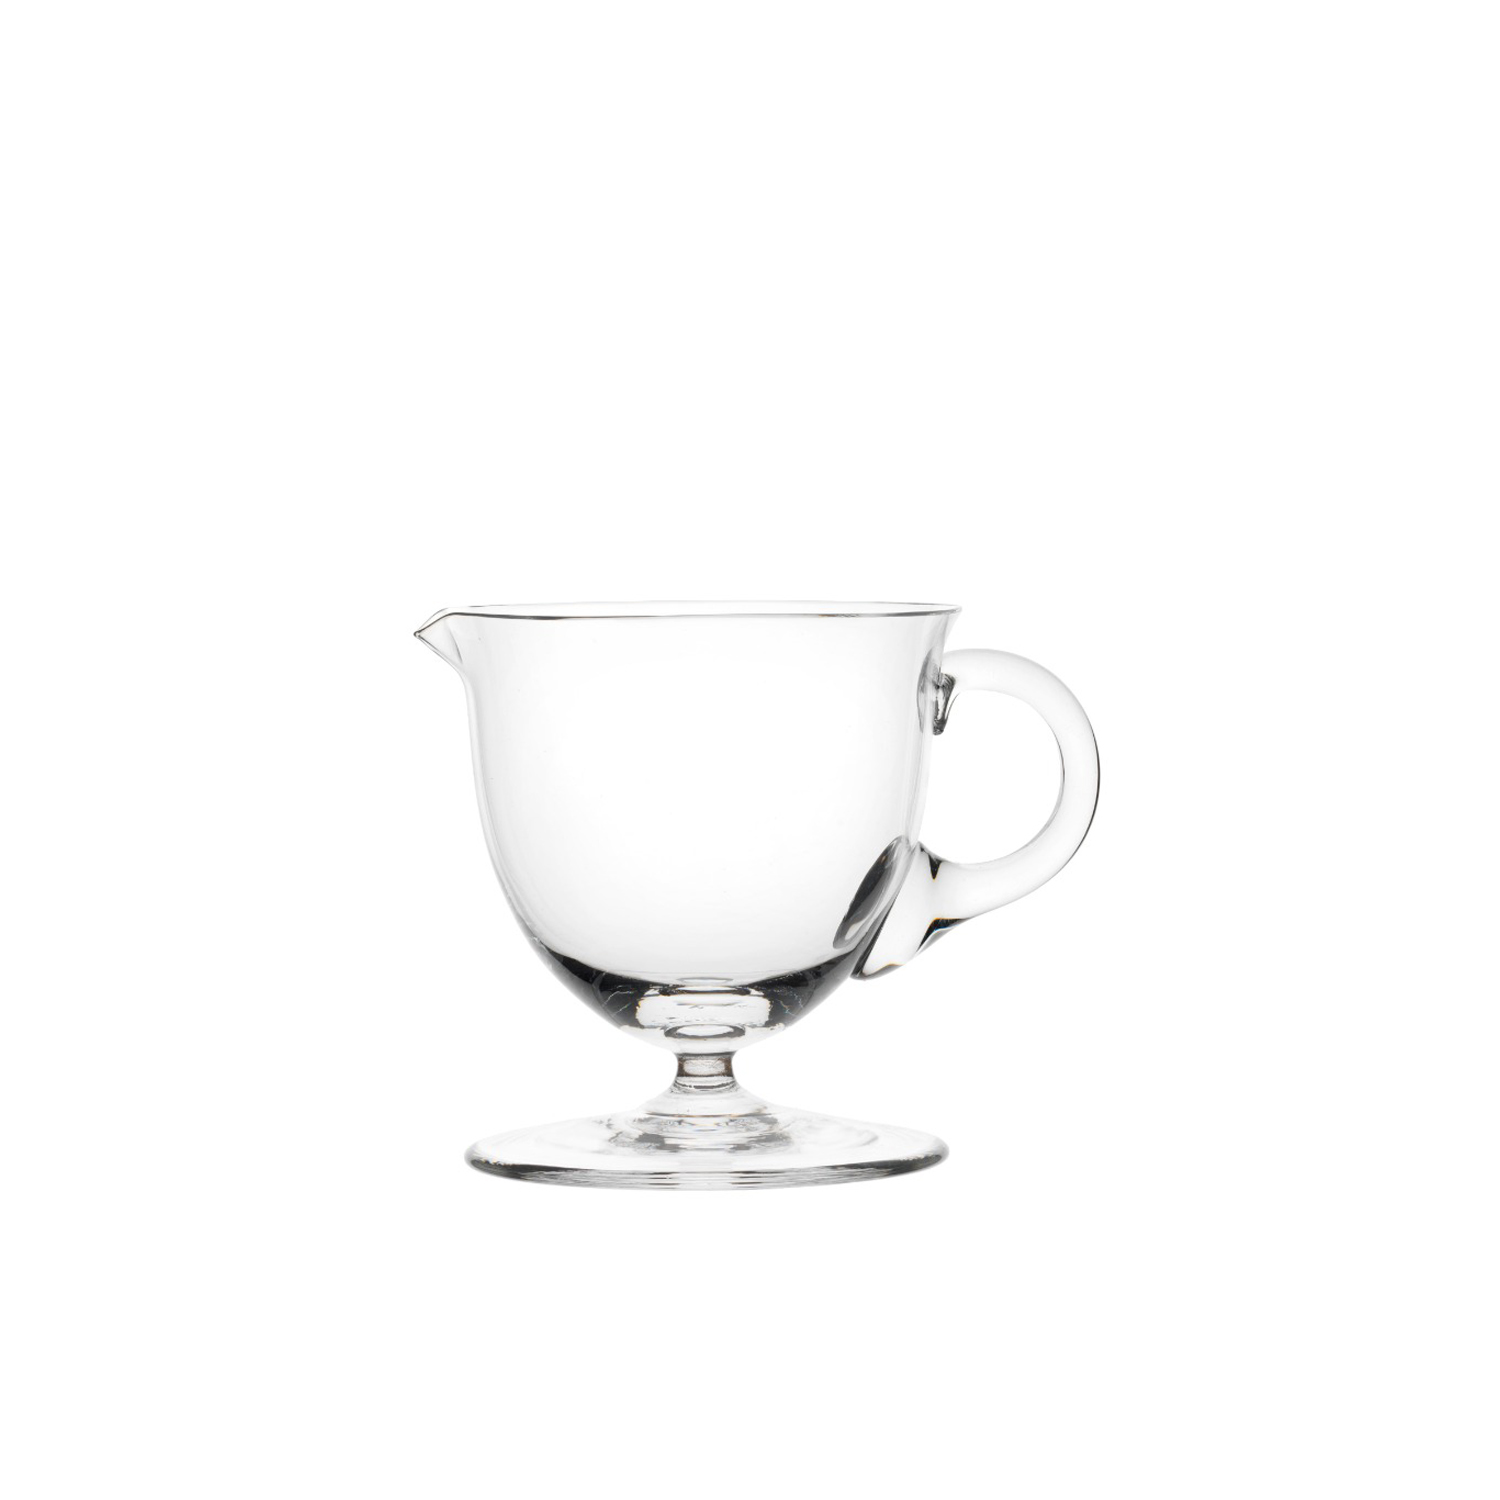 Drinking Set No.238 Milk Jug - Set of 6 - The perfectly flowing contours of these original Josef Hoffmann shapes make this muslin glass series a classic. This elegantly balanced stemware was designed by Hoffmann for Lobmeyr already in 1917. The material - very fine (muslin) glass, mouth-blown in wooden moulds provides perfect elegance for these glasses.  | Matter of Stuff